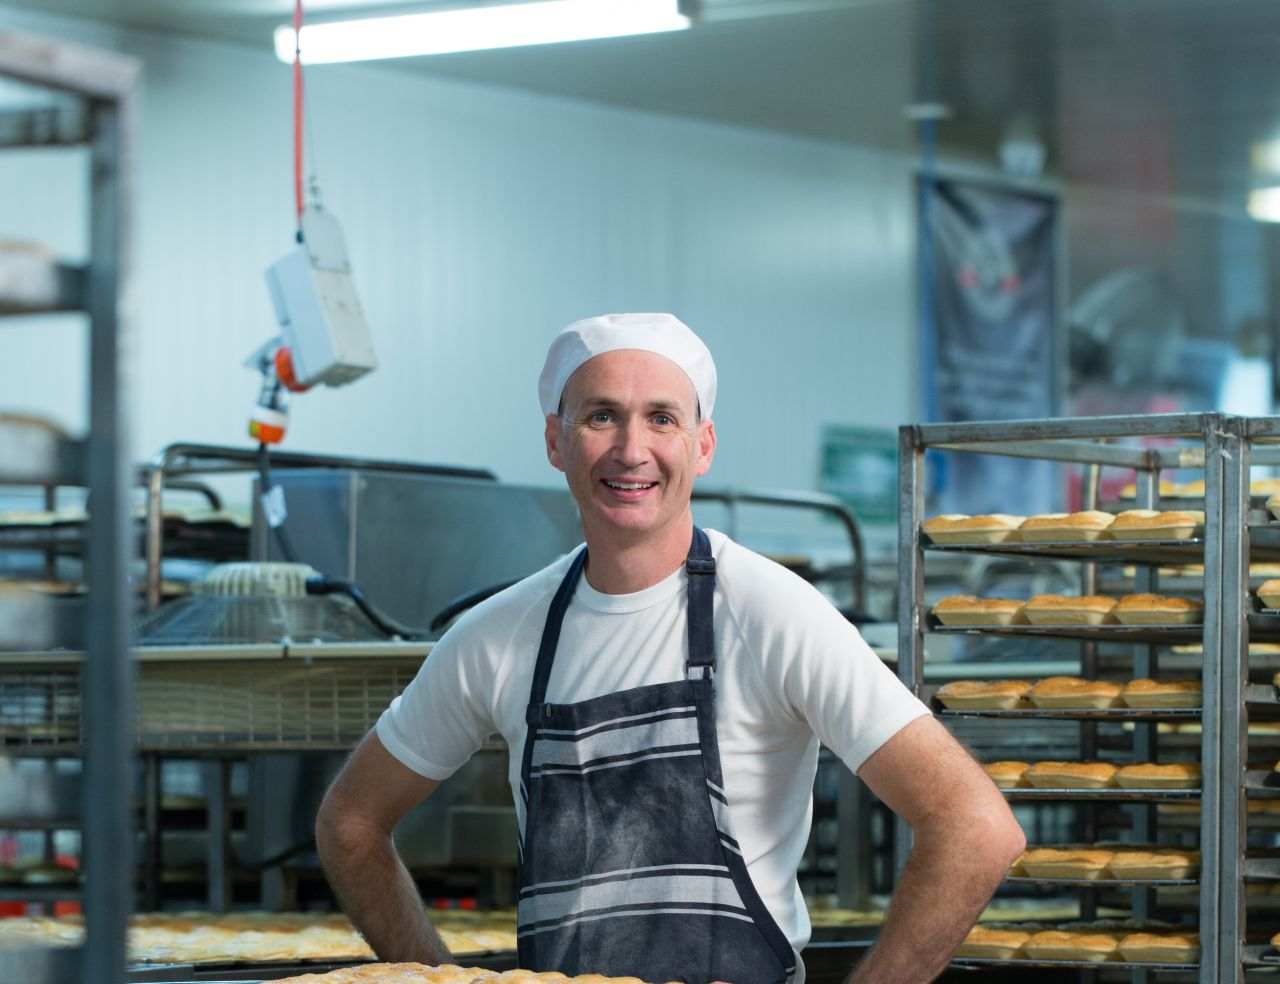 A baker standing in the bakery with a tray of pies